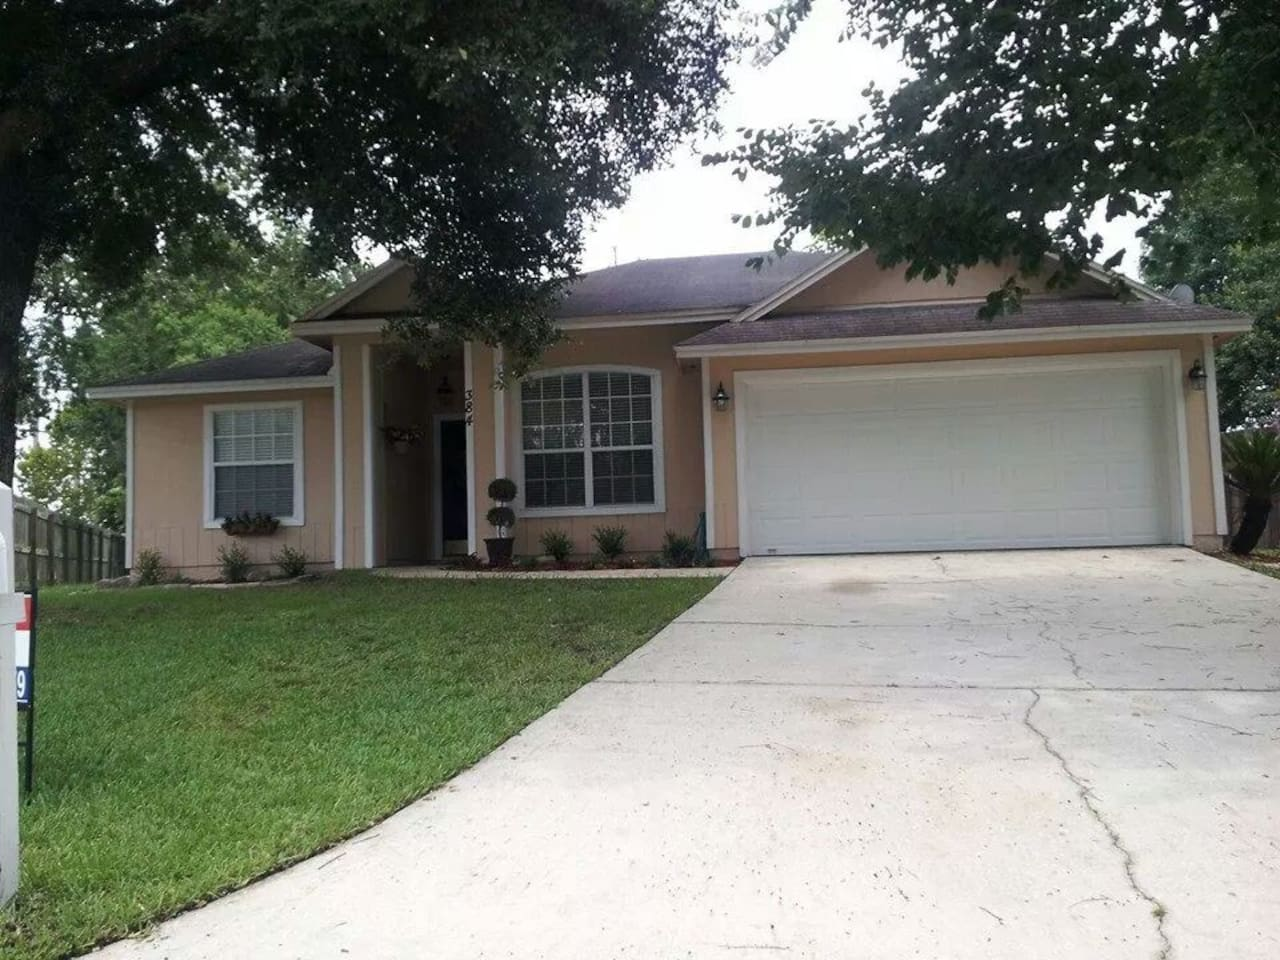 My home is a 3 bedroom, 2 bath home at the end of a Cul-de-sac with a HUGE fenced in back yard!